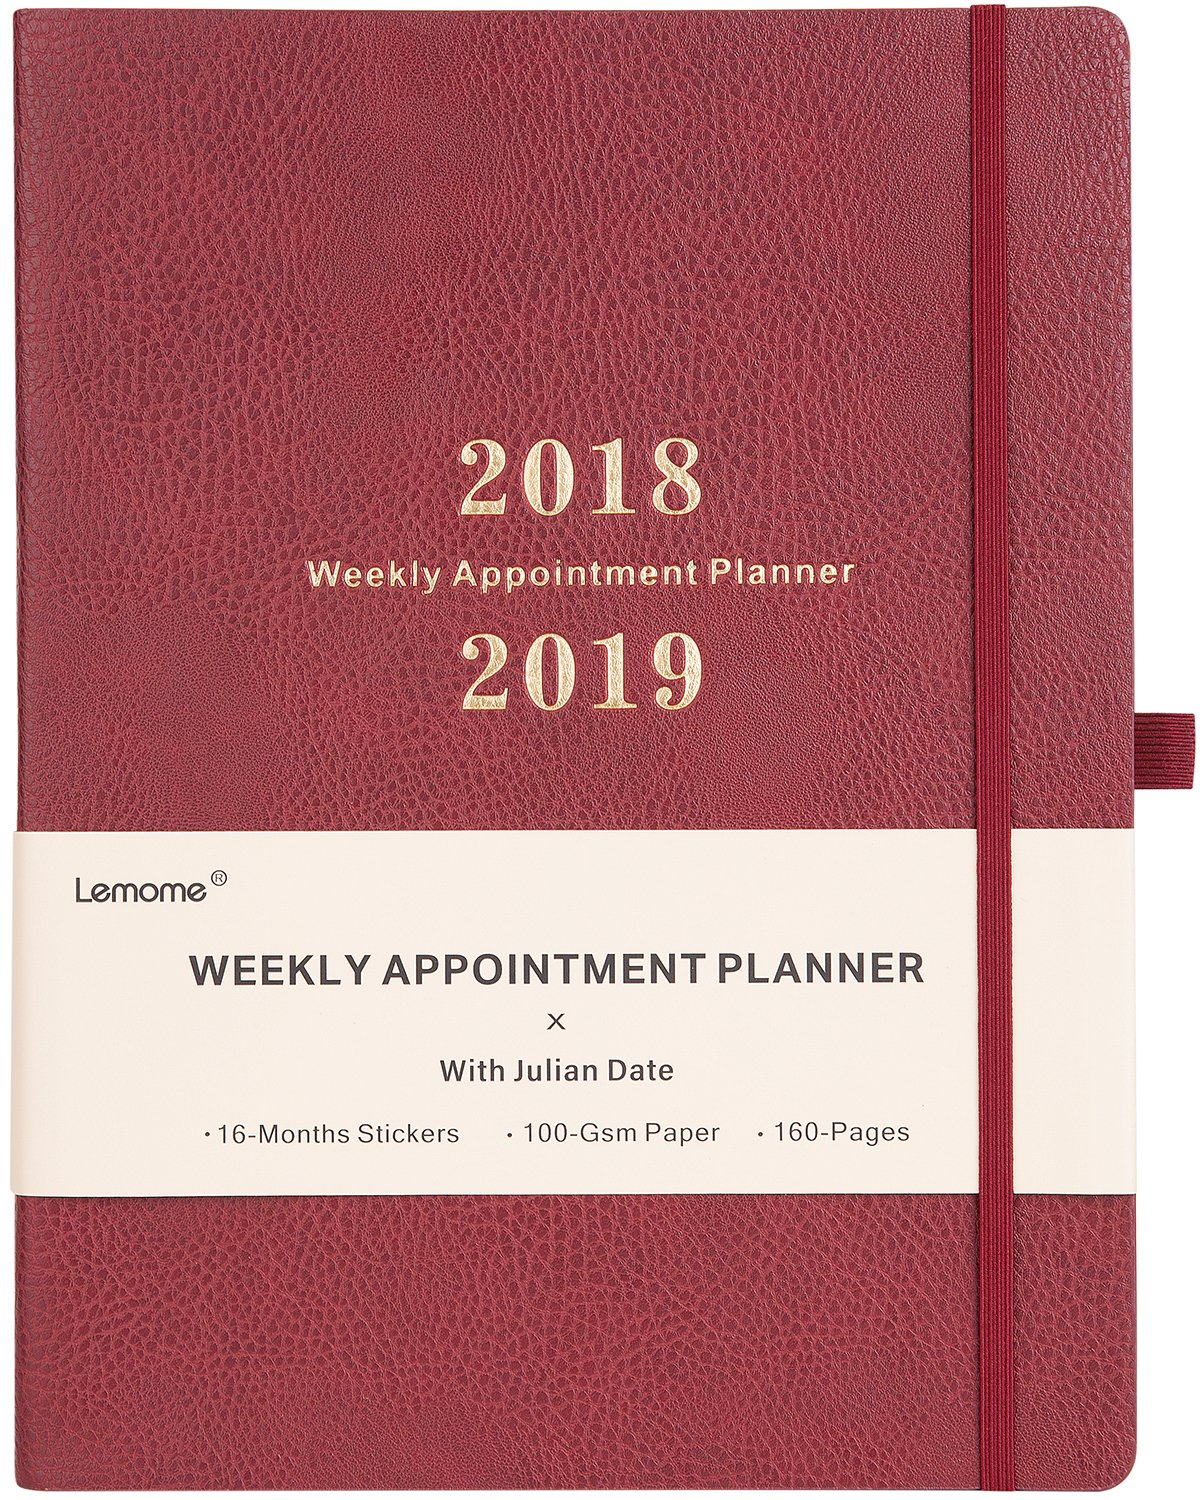 Planner 2018-2019 with Pen Holder - Weekly Appointment Book/Planner with to-DO List, Thick Paper to Achieve Your Goals & Improve Productivity, 8.5'' x 11'', Back Pocket with Julian Date - Red Brown